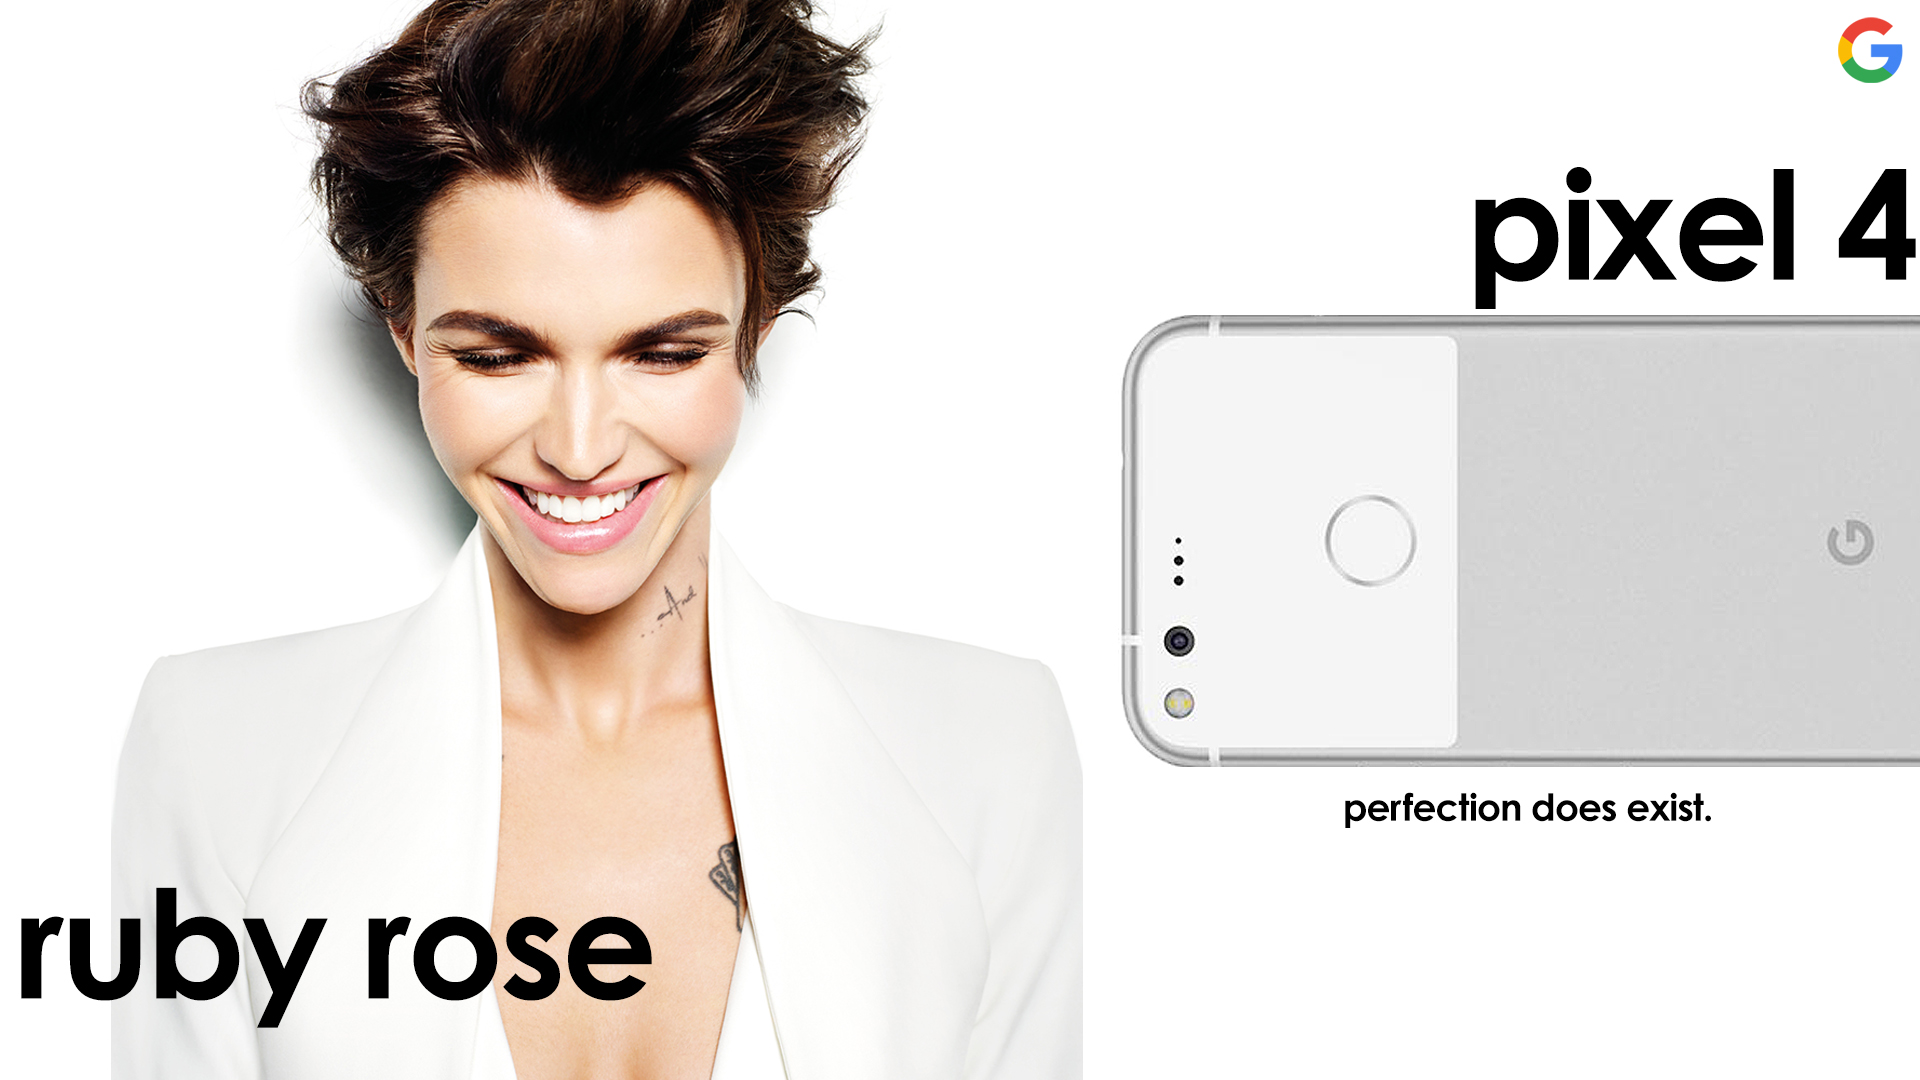 Mock up for Ruby Rose x Google Pixel Brand Endorsement. 2019.